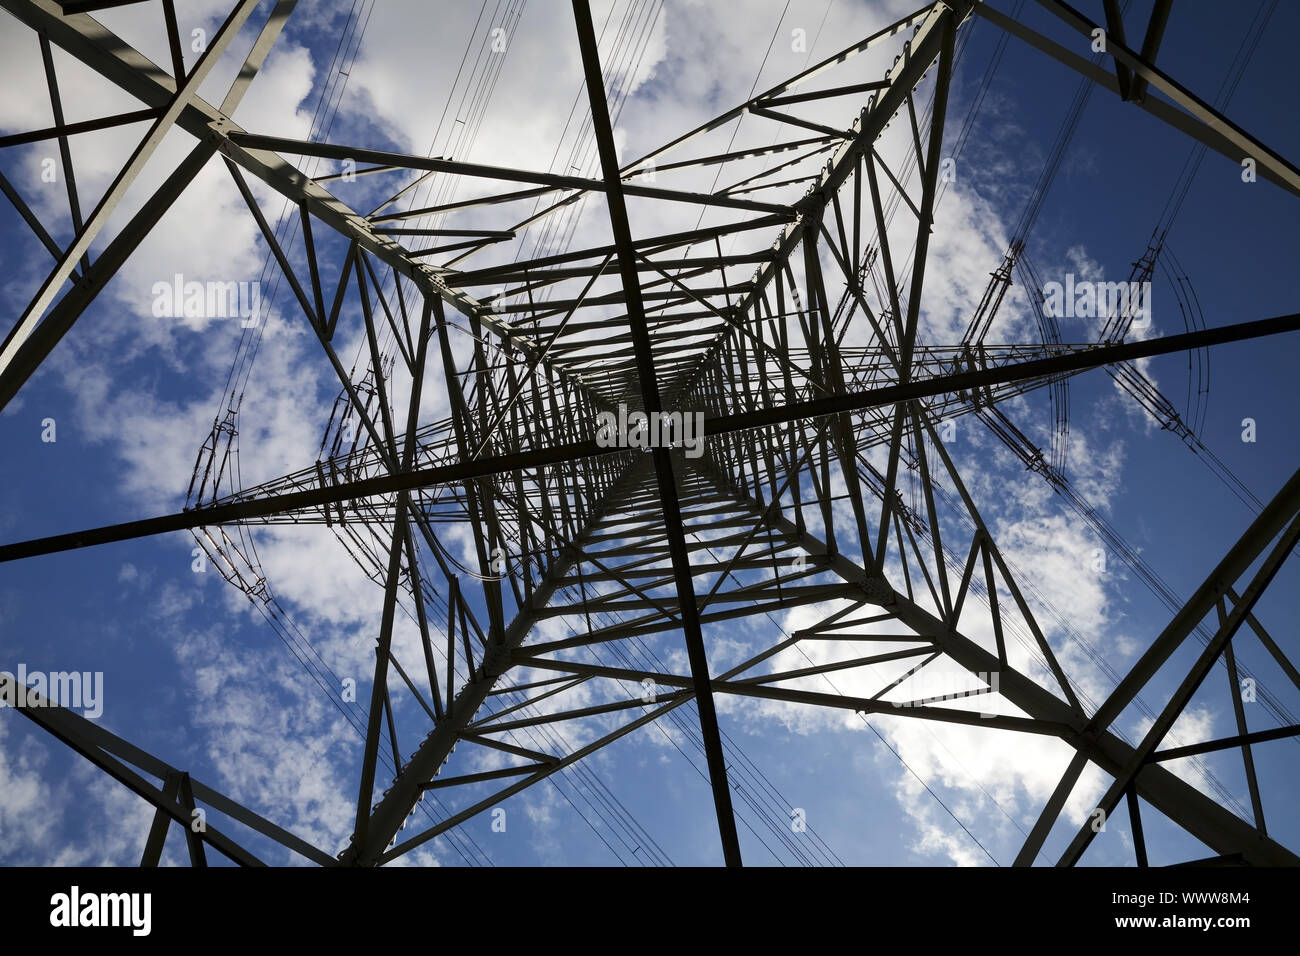 view from below to the top of a power pole, Voerde, North Rhine-Westphalia, Germany, Europe Stock Photo